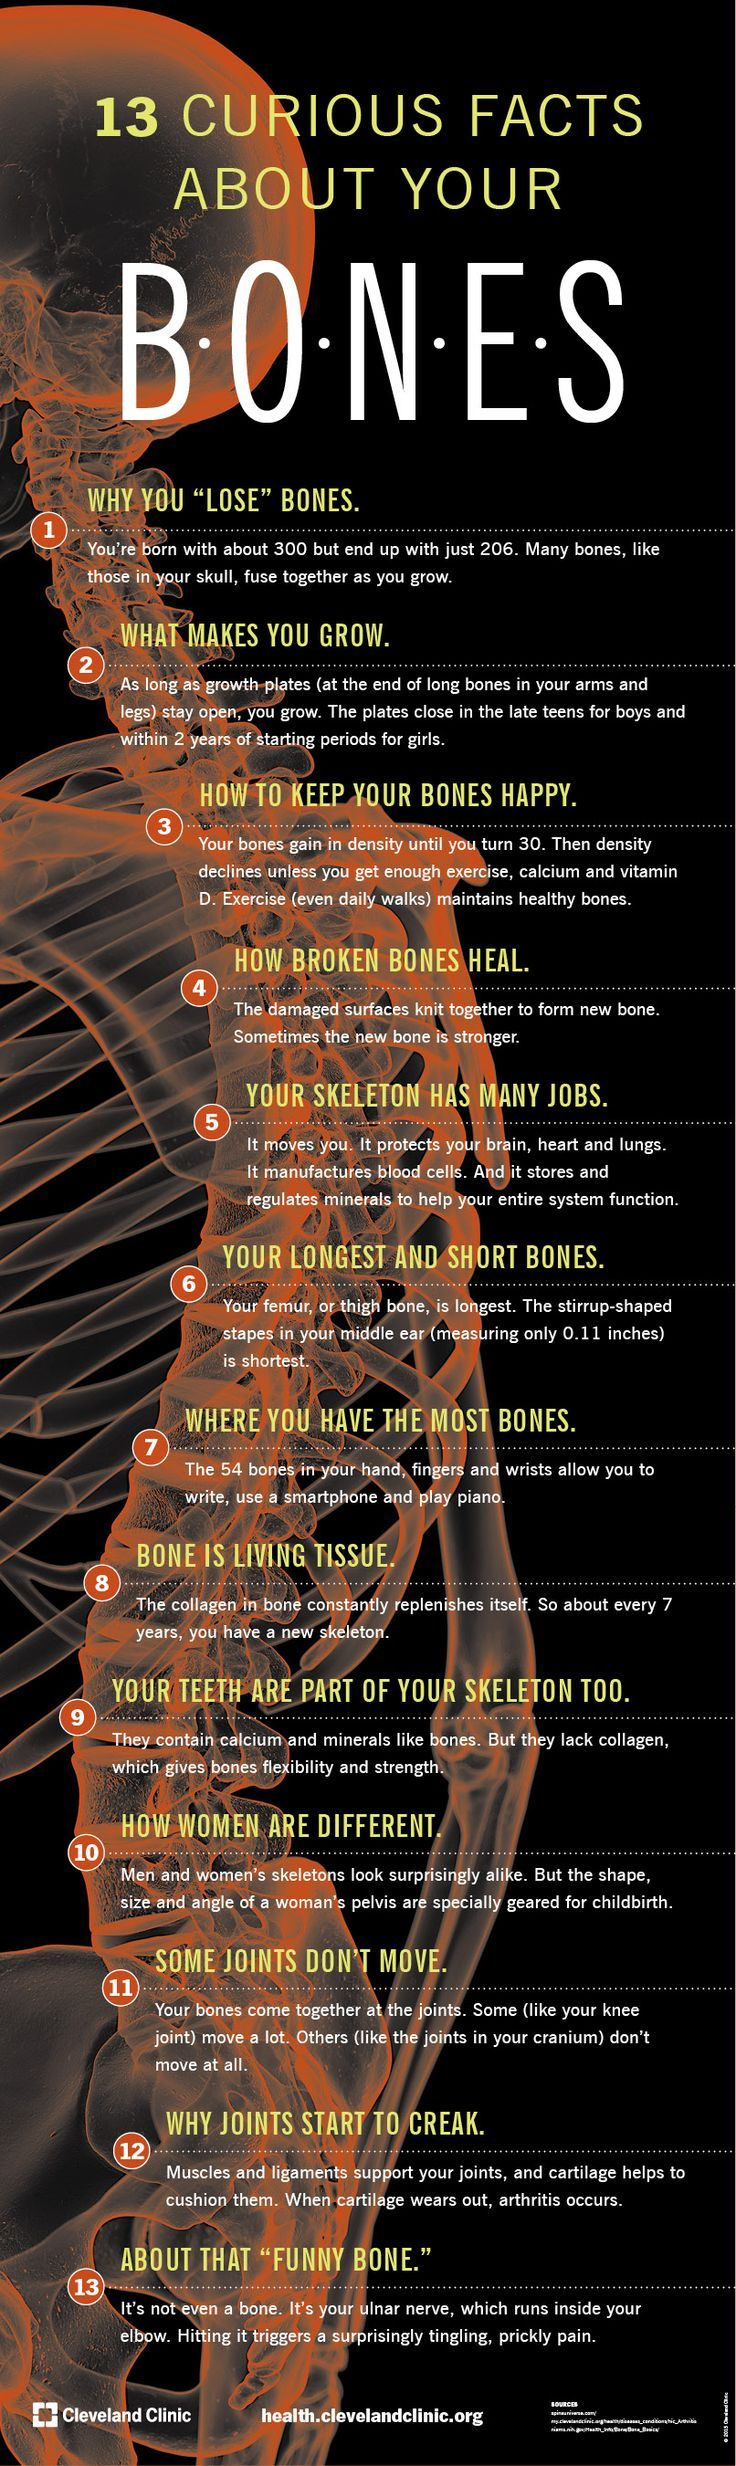 13 Strange And Interesting Facts About Your Bones Infographic